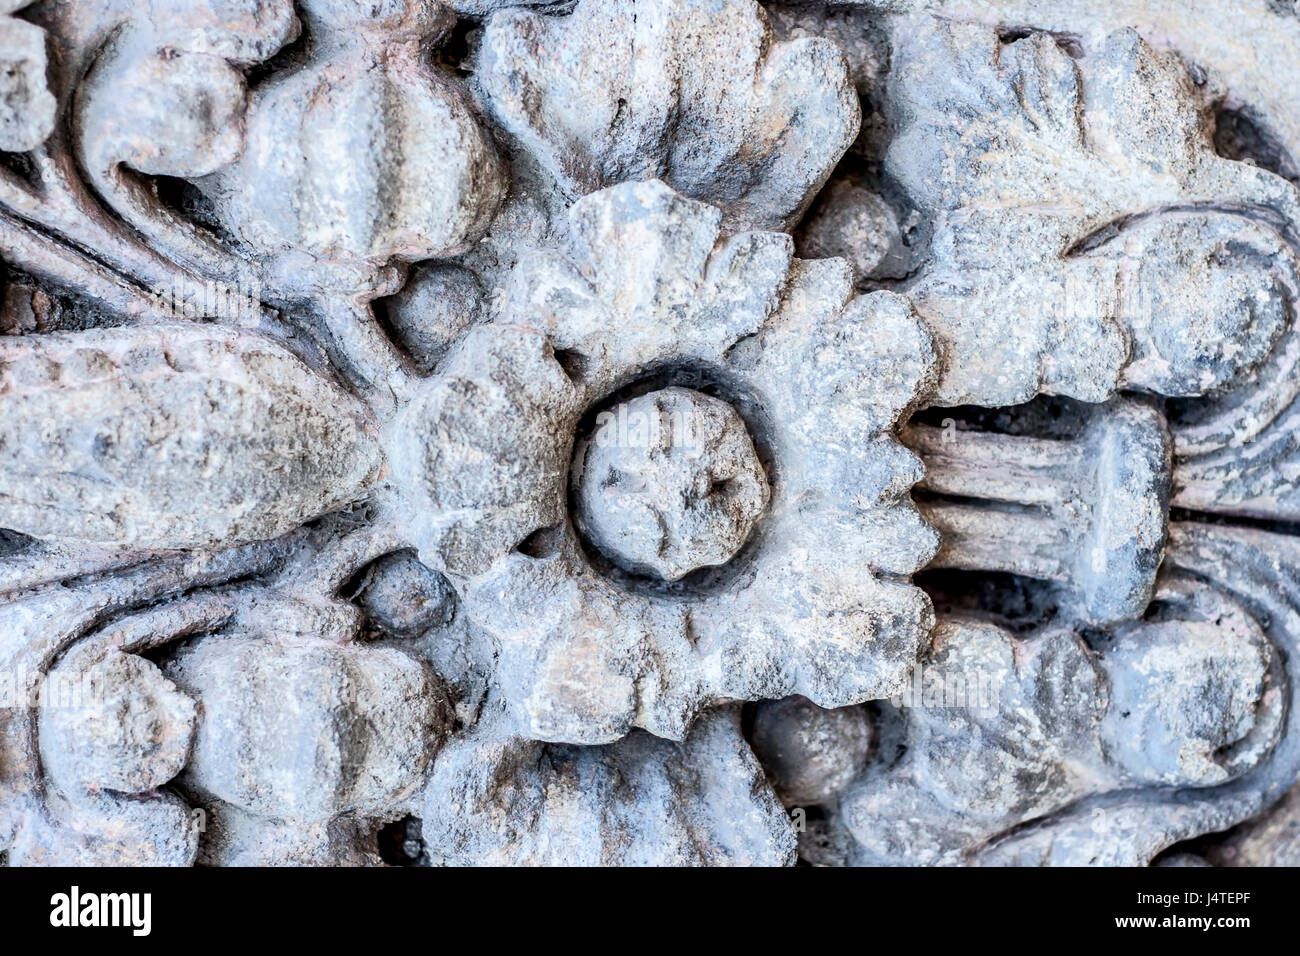 Vintage stone curving as background. - Stock Image